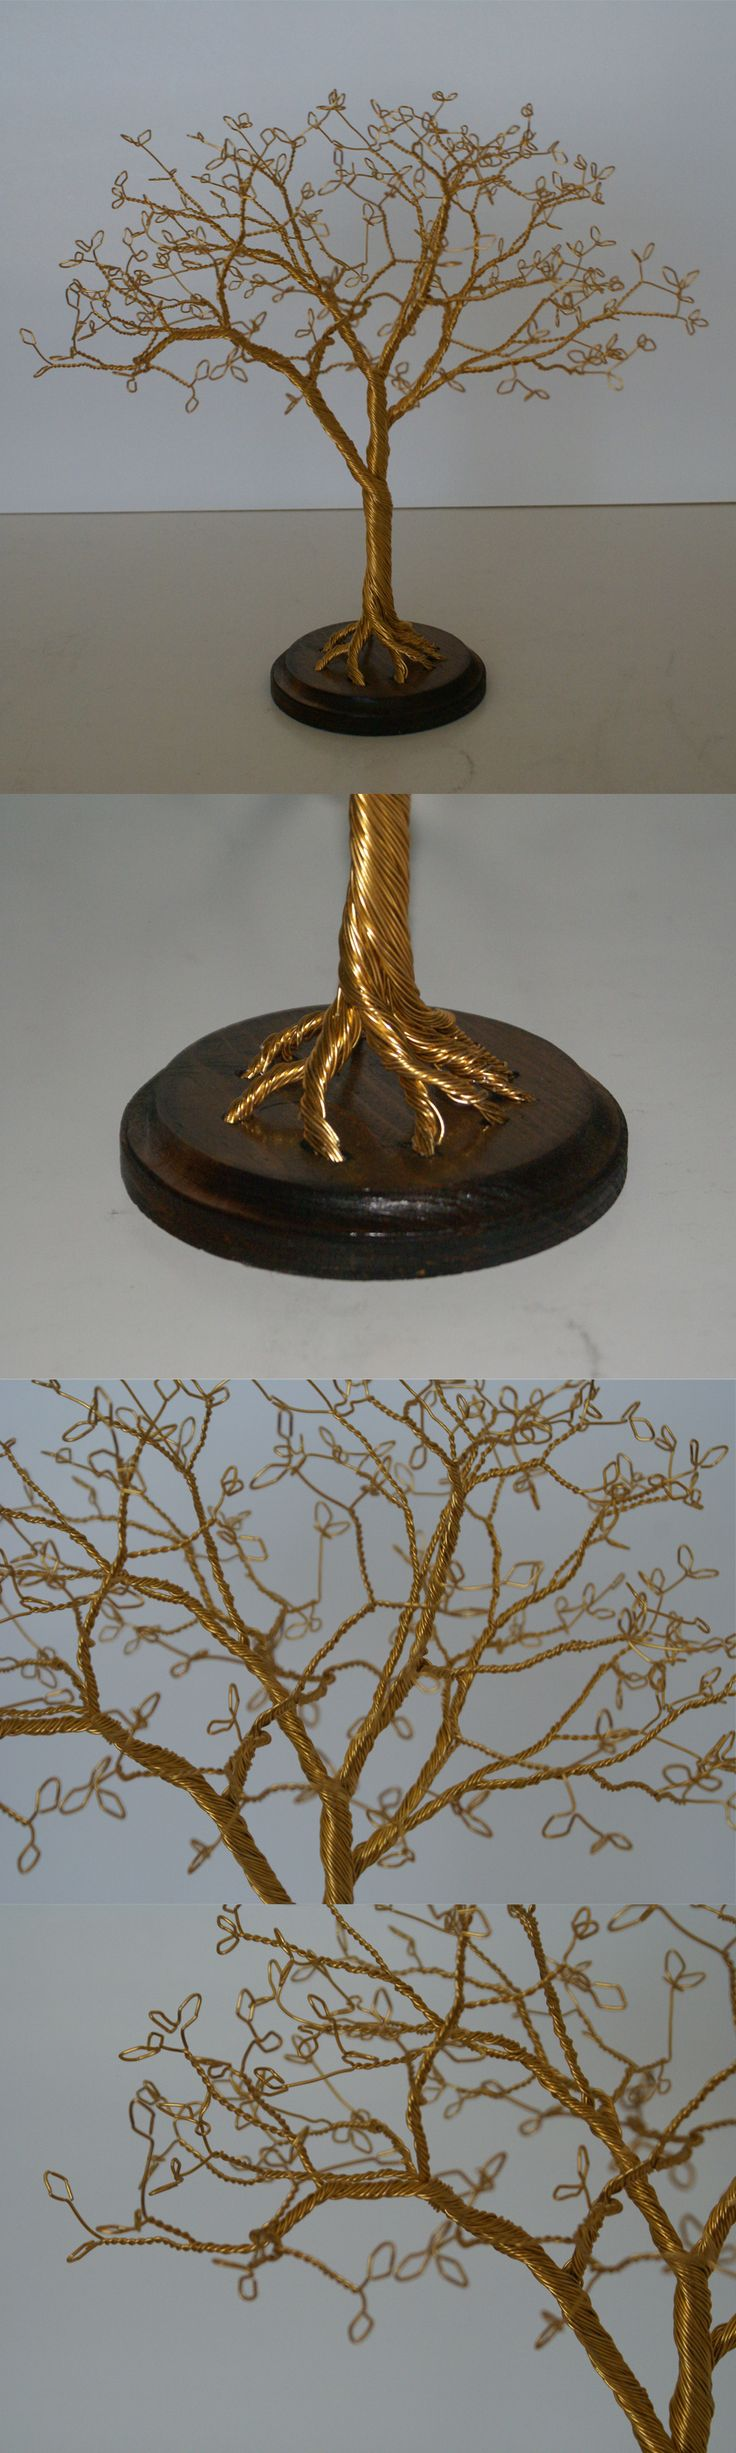 Wire tree I made. This time I drilled some holes in a wood plaque I got from the craft store and glued them in after staining and finishing the wood. I had fun with the leaves on this one. My dad says it looks like a fairy tree.